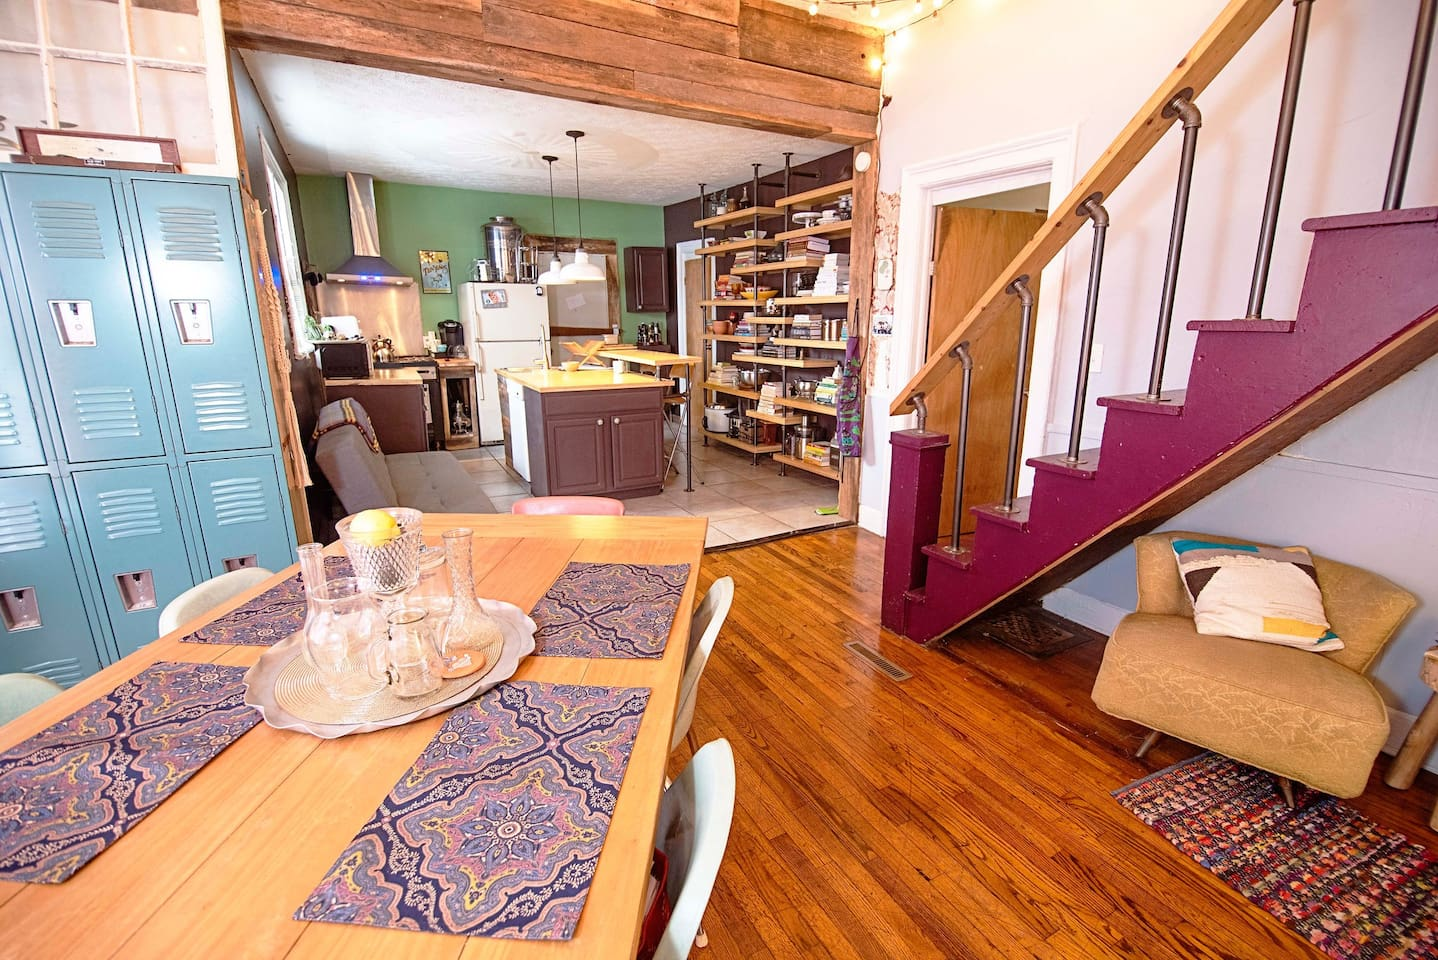 Open floor plan is great for small groups traveling and gathering together.  The kitchen, dining room and living room areas are all open and connected.  Small tea nook under the staircase, two full bathrooms with walk-in showers on the 1st Floor.